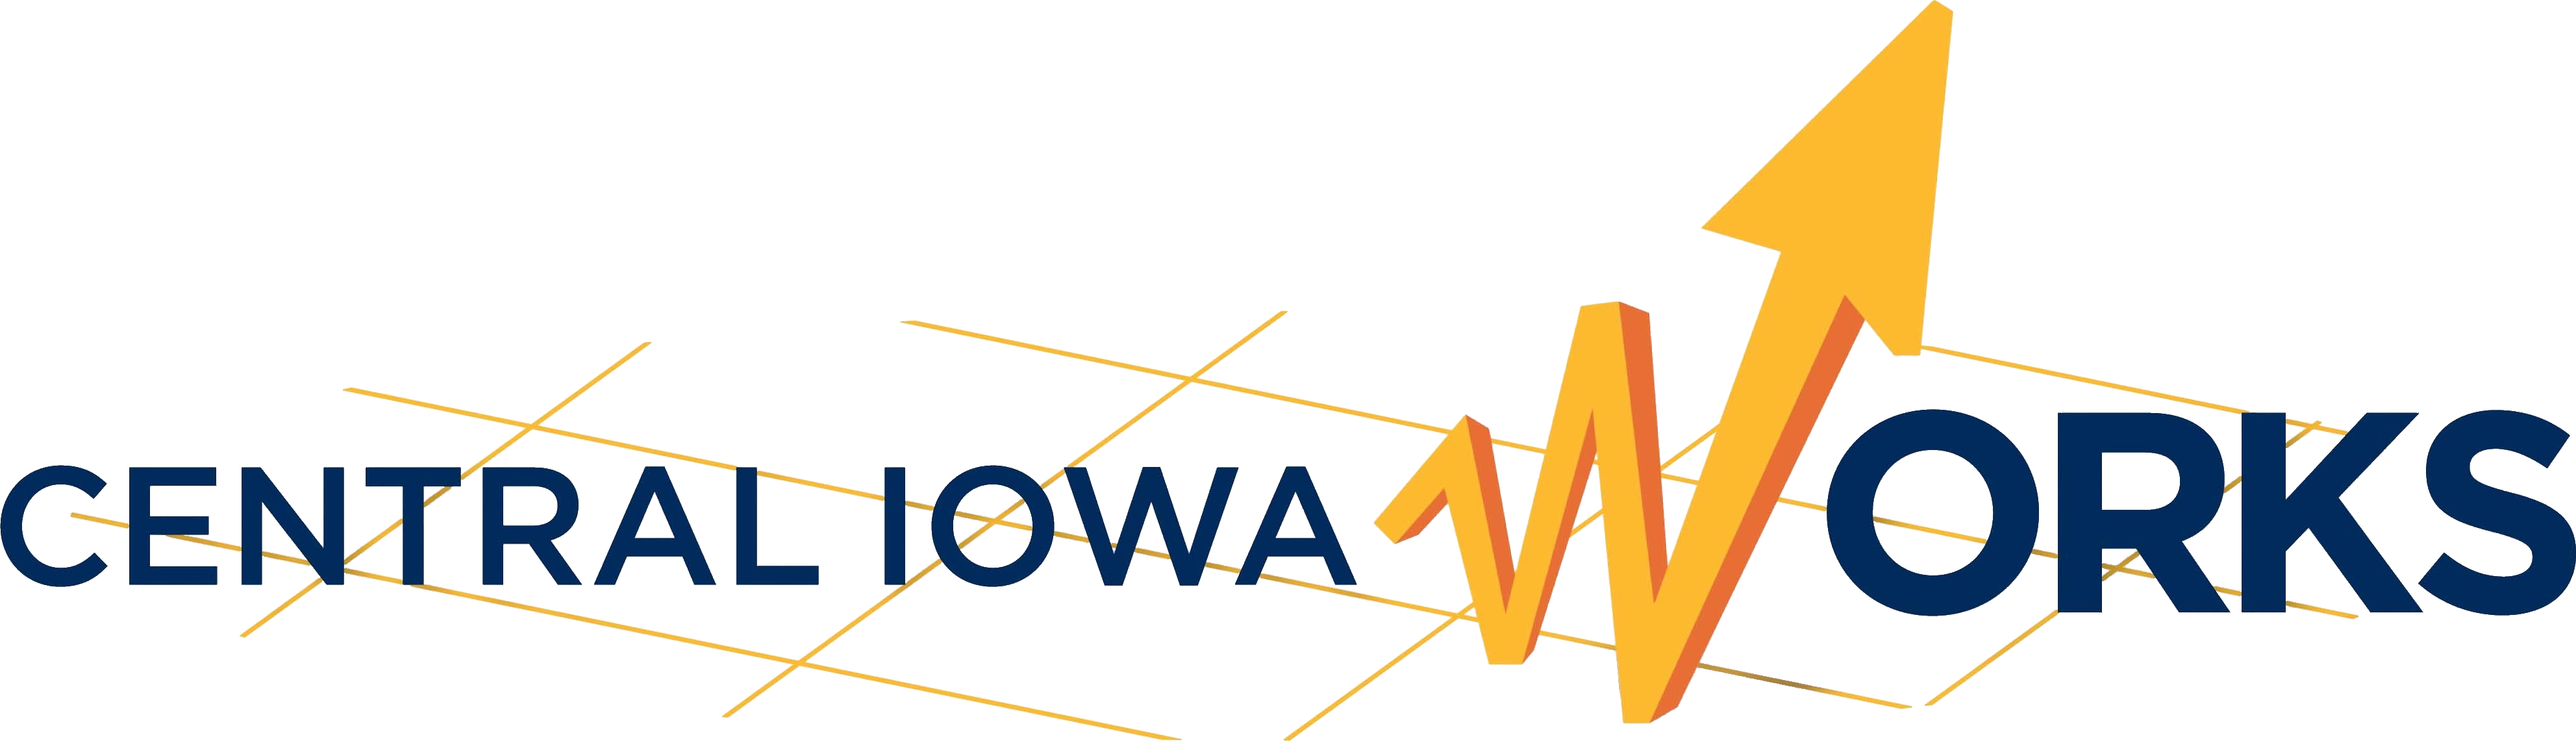 central-iowa-works-logo.png